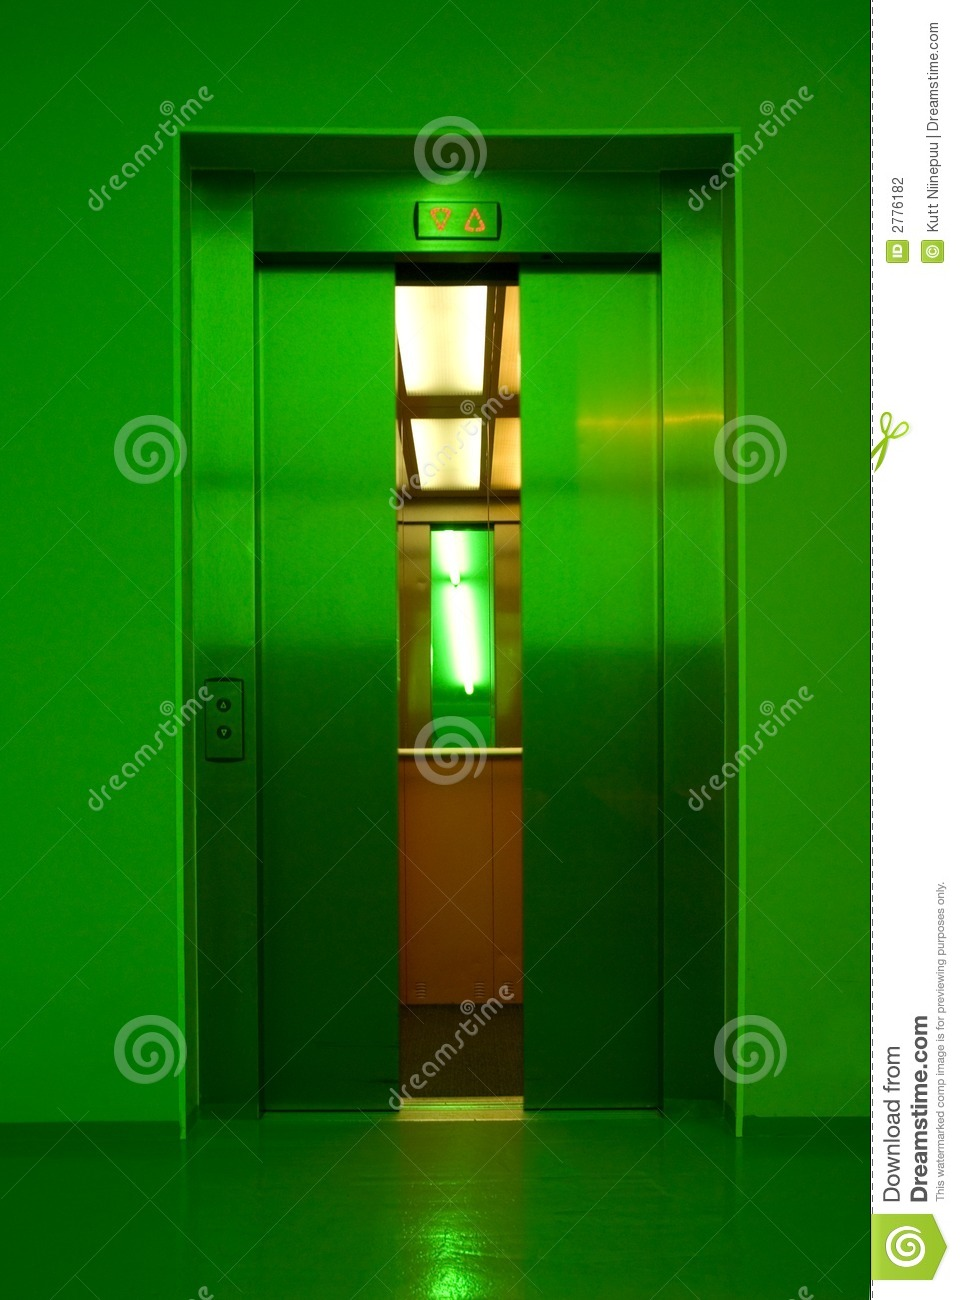 My Ford Credit >> Closing Elevator Doors Stock Photography - Image: 2776182